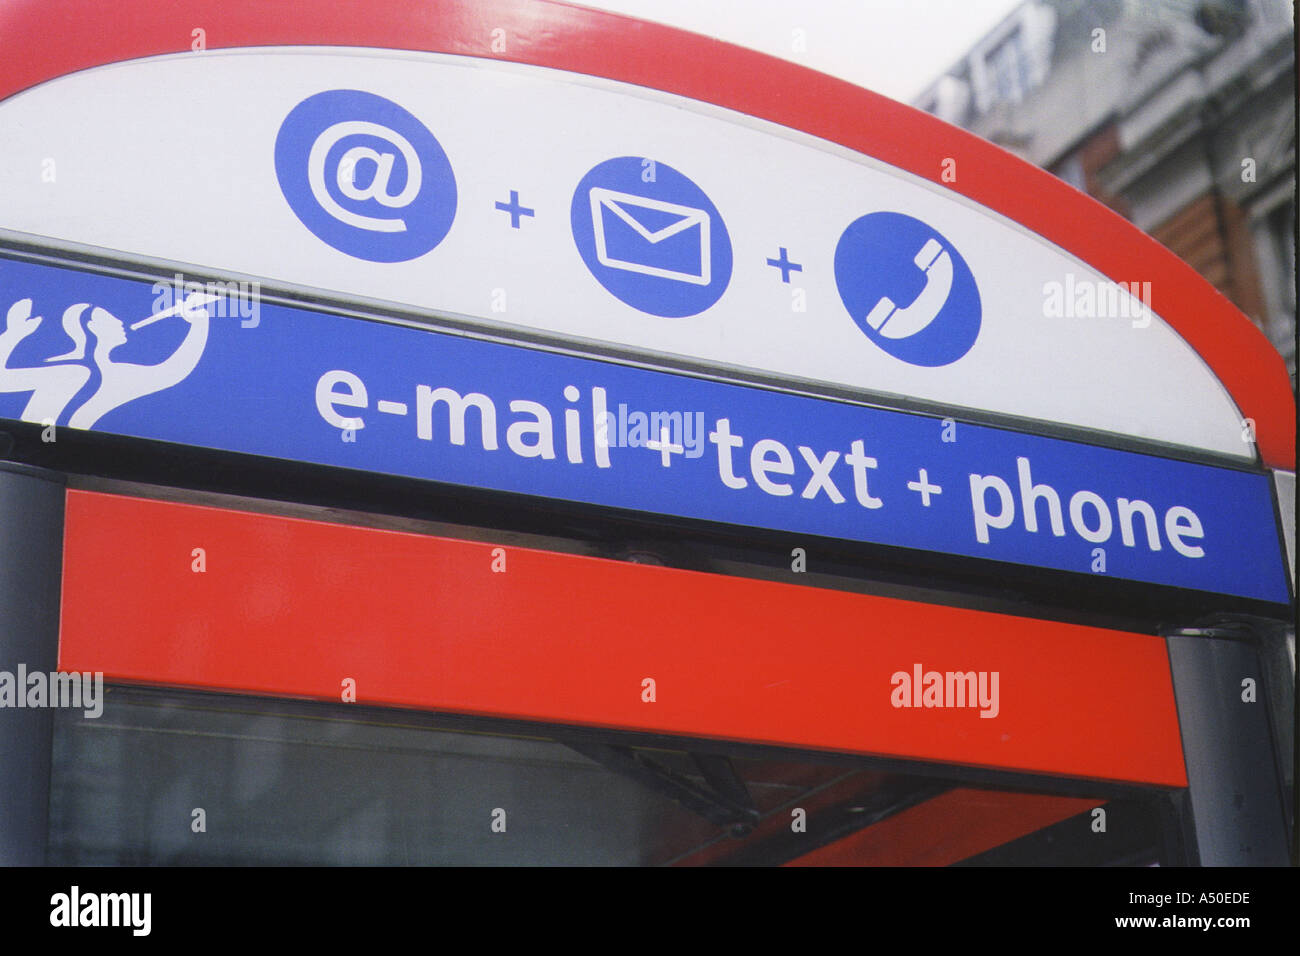 Telephone Kiosk Signs E Mail Text and Phone - Stock Image